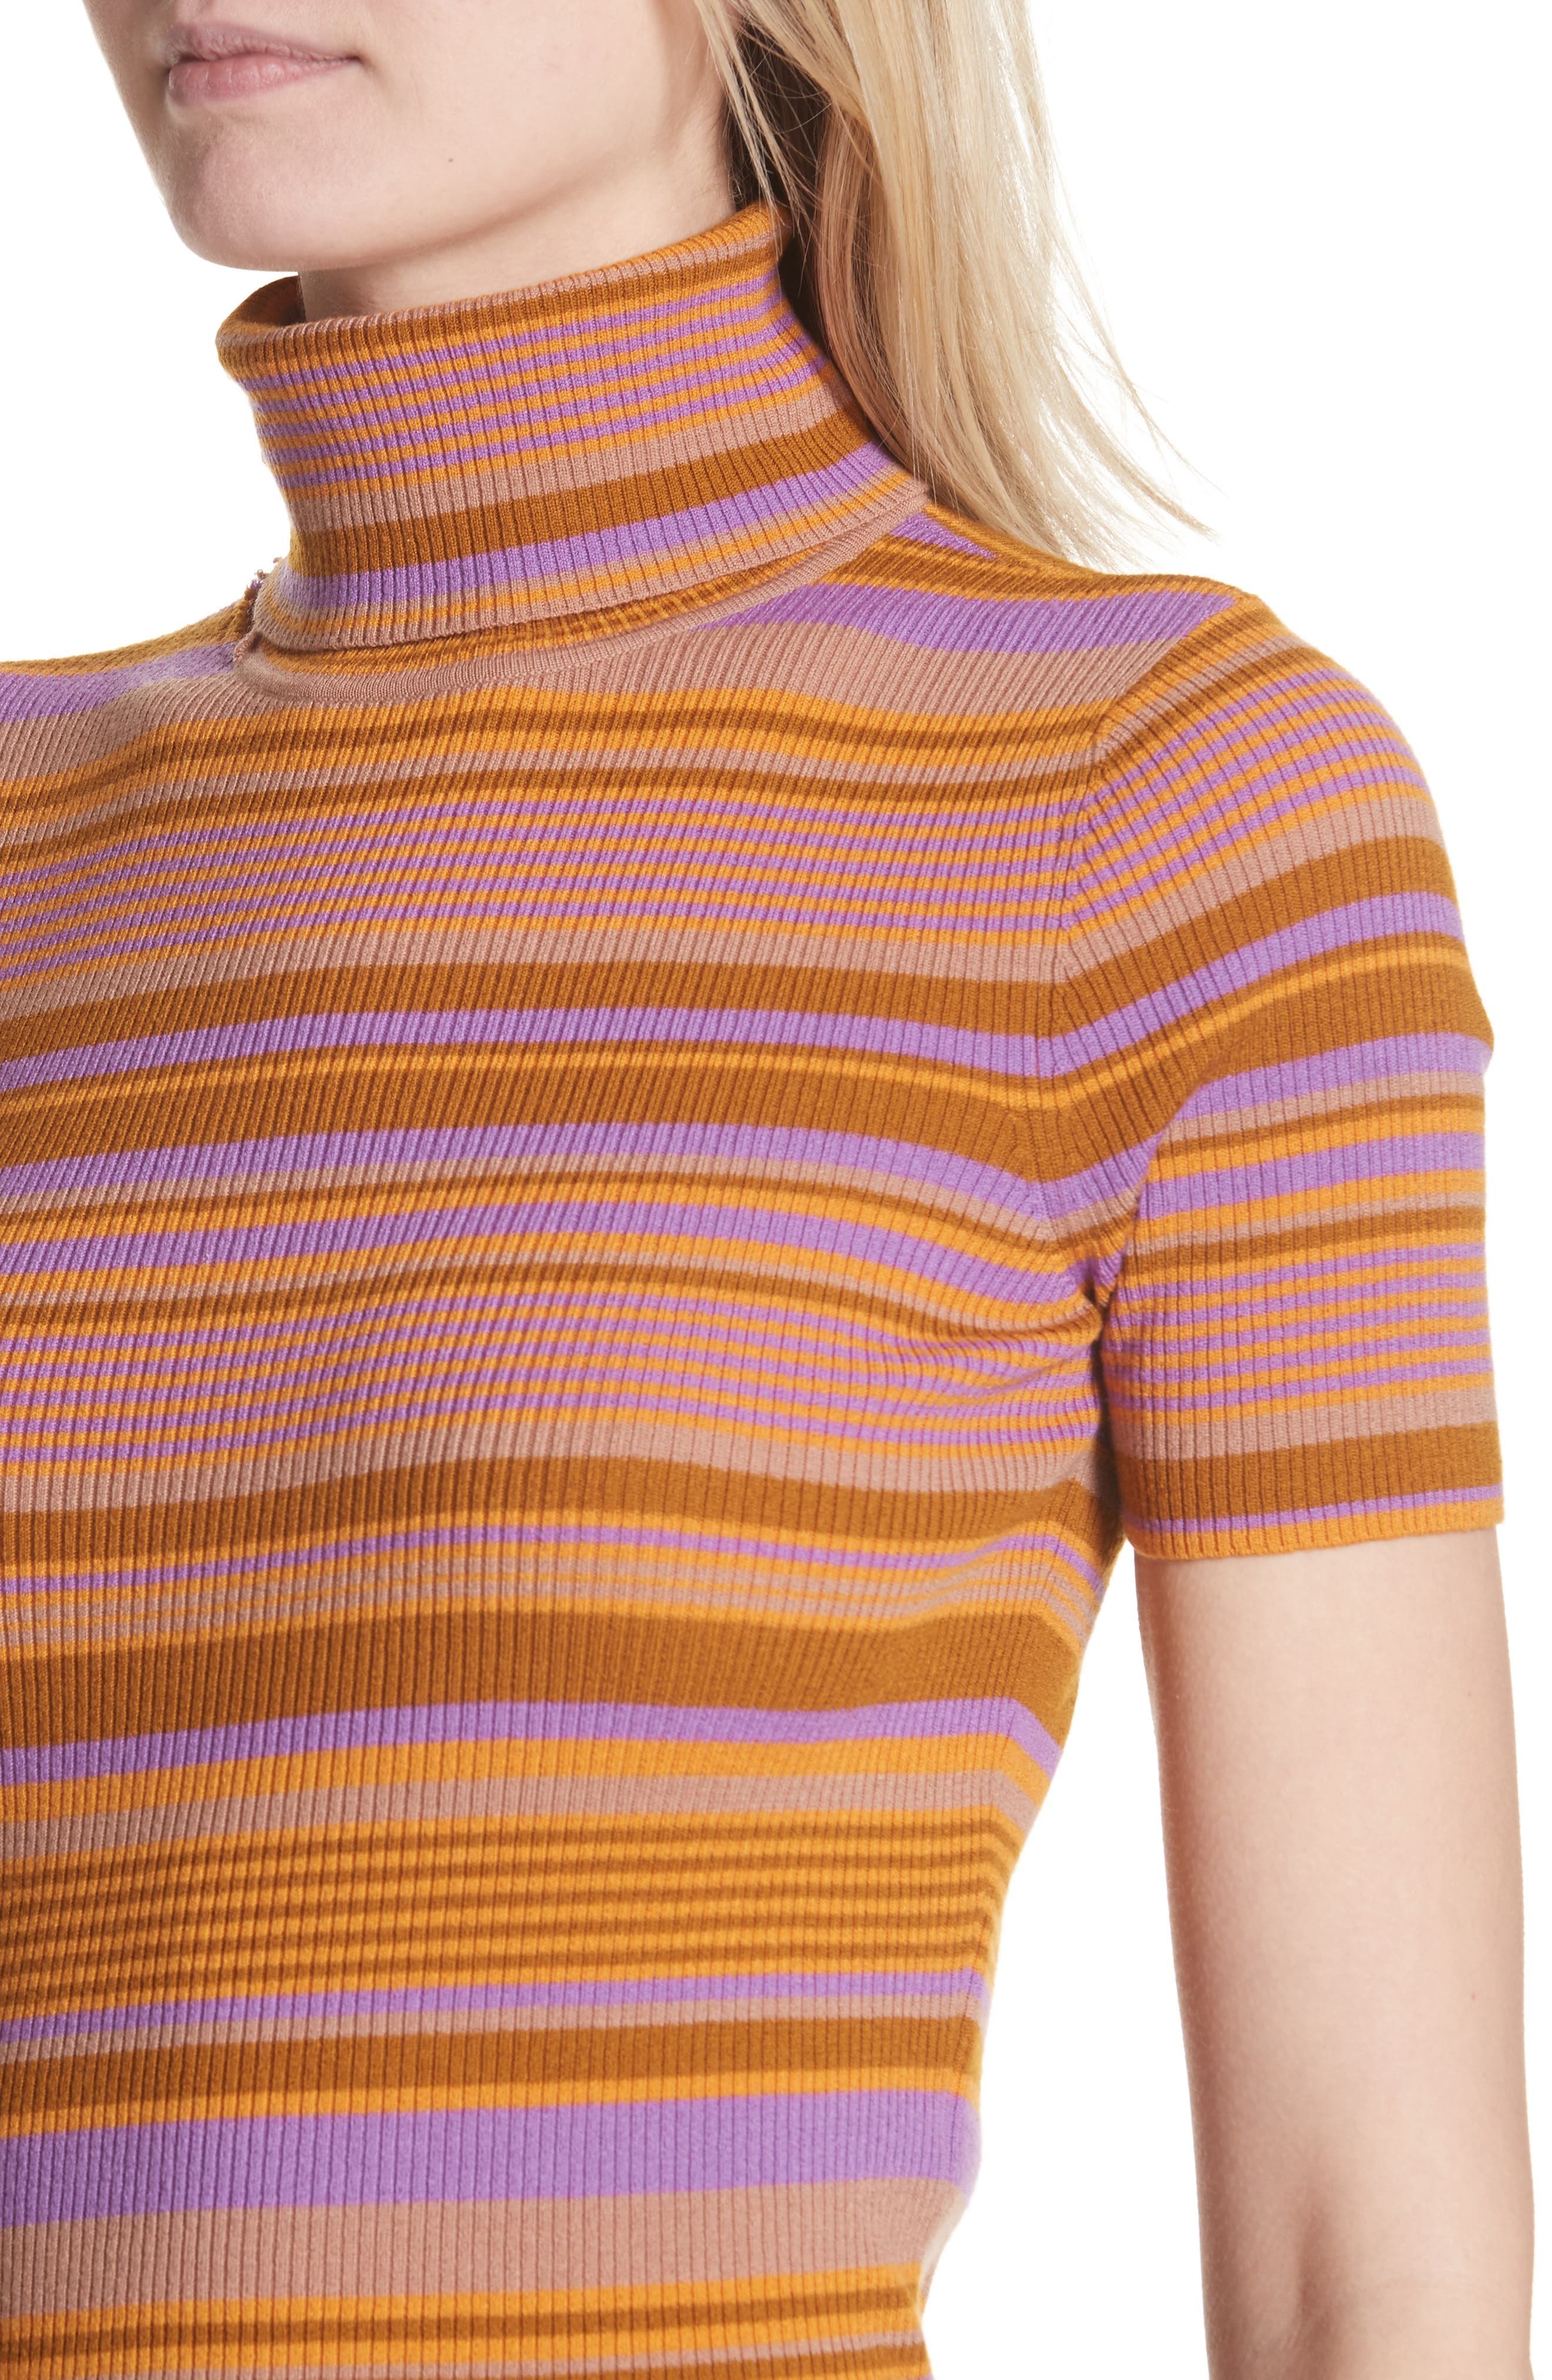 Doninico Stripe Turtleneck Stretch Wool Sweater,                             Alternate thumbnail 4, color,                             560